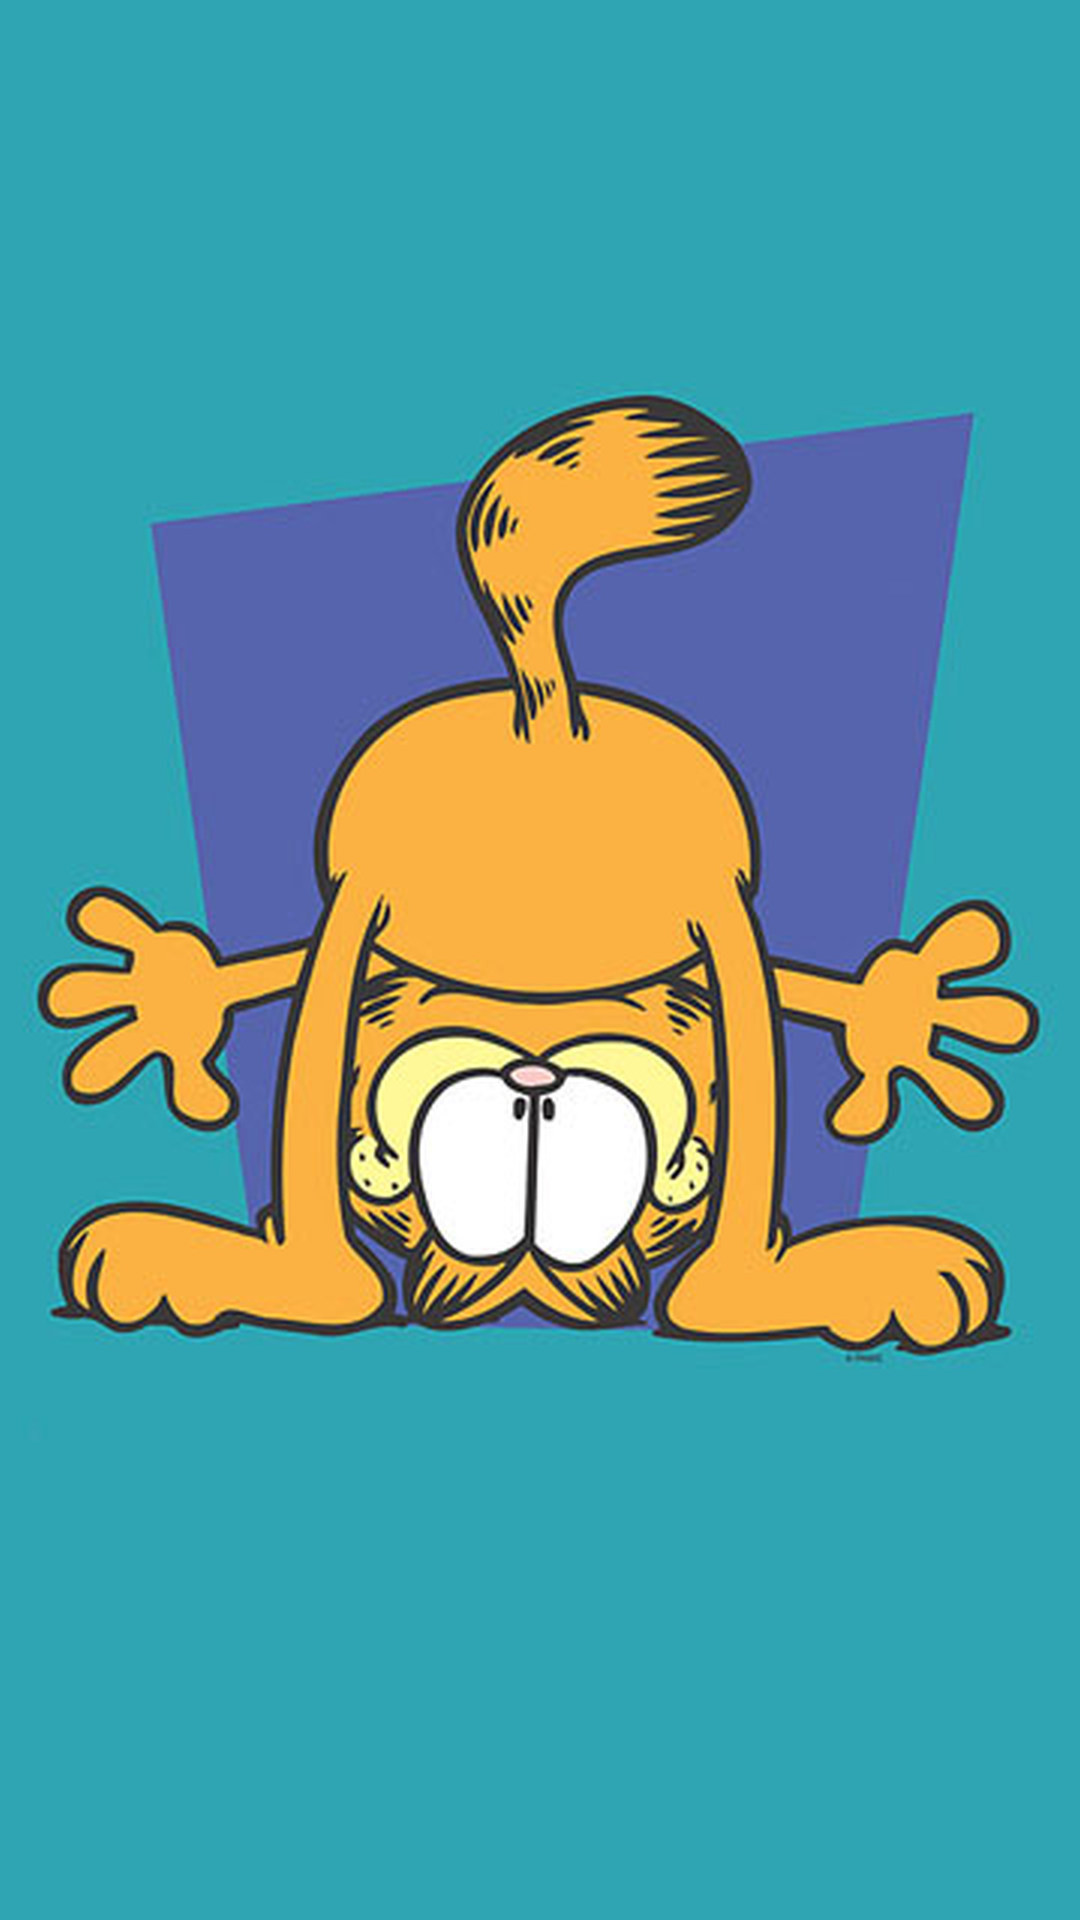 Garfield wallpapers 56 background pictures - Garfield wallpapers for mobile ...